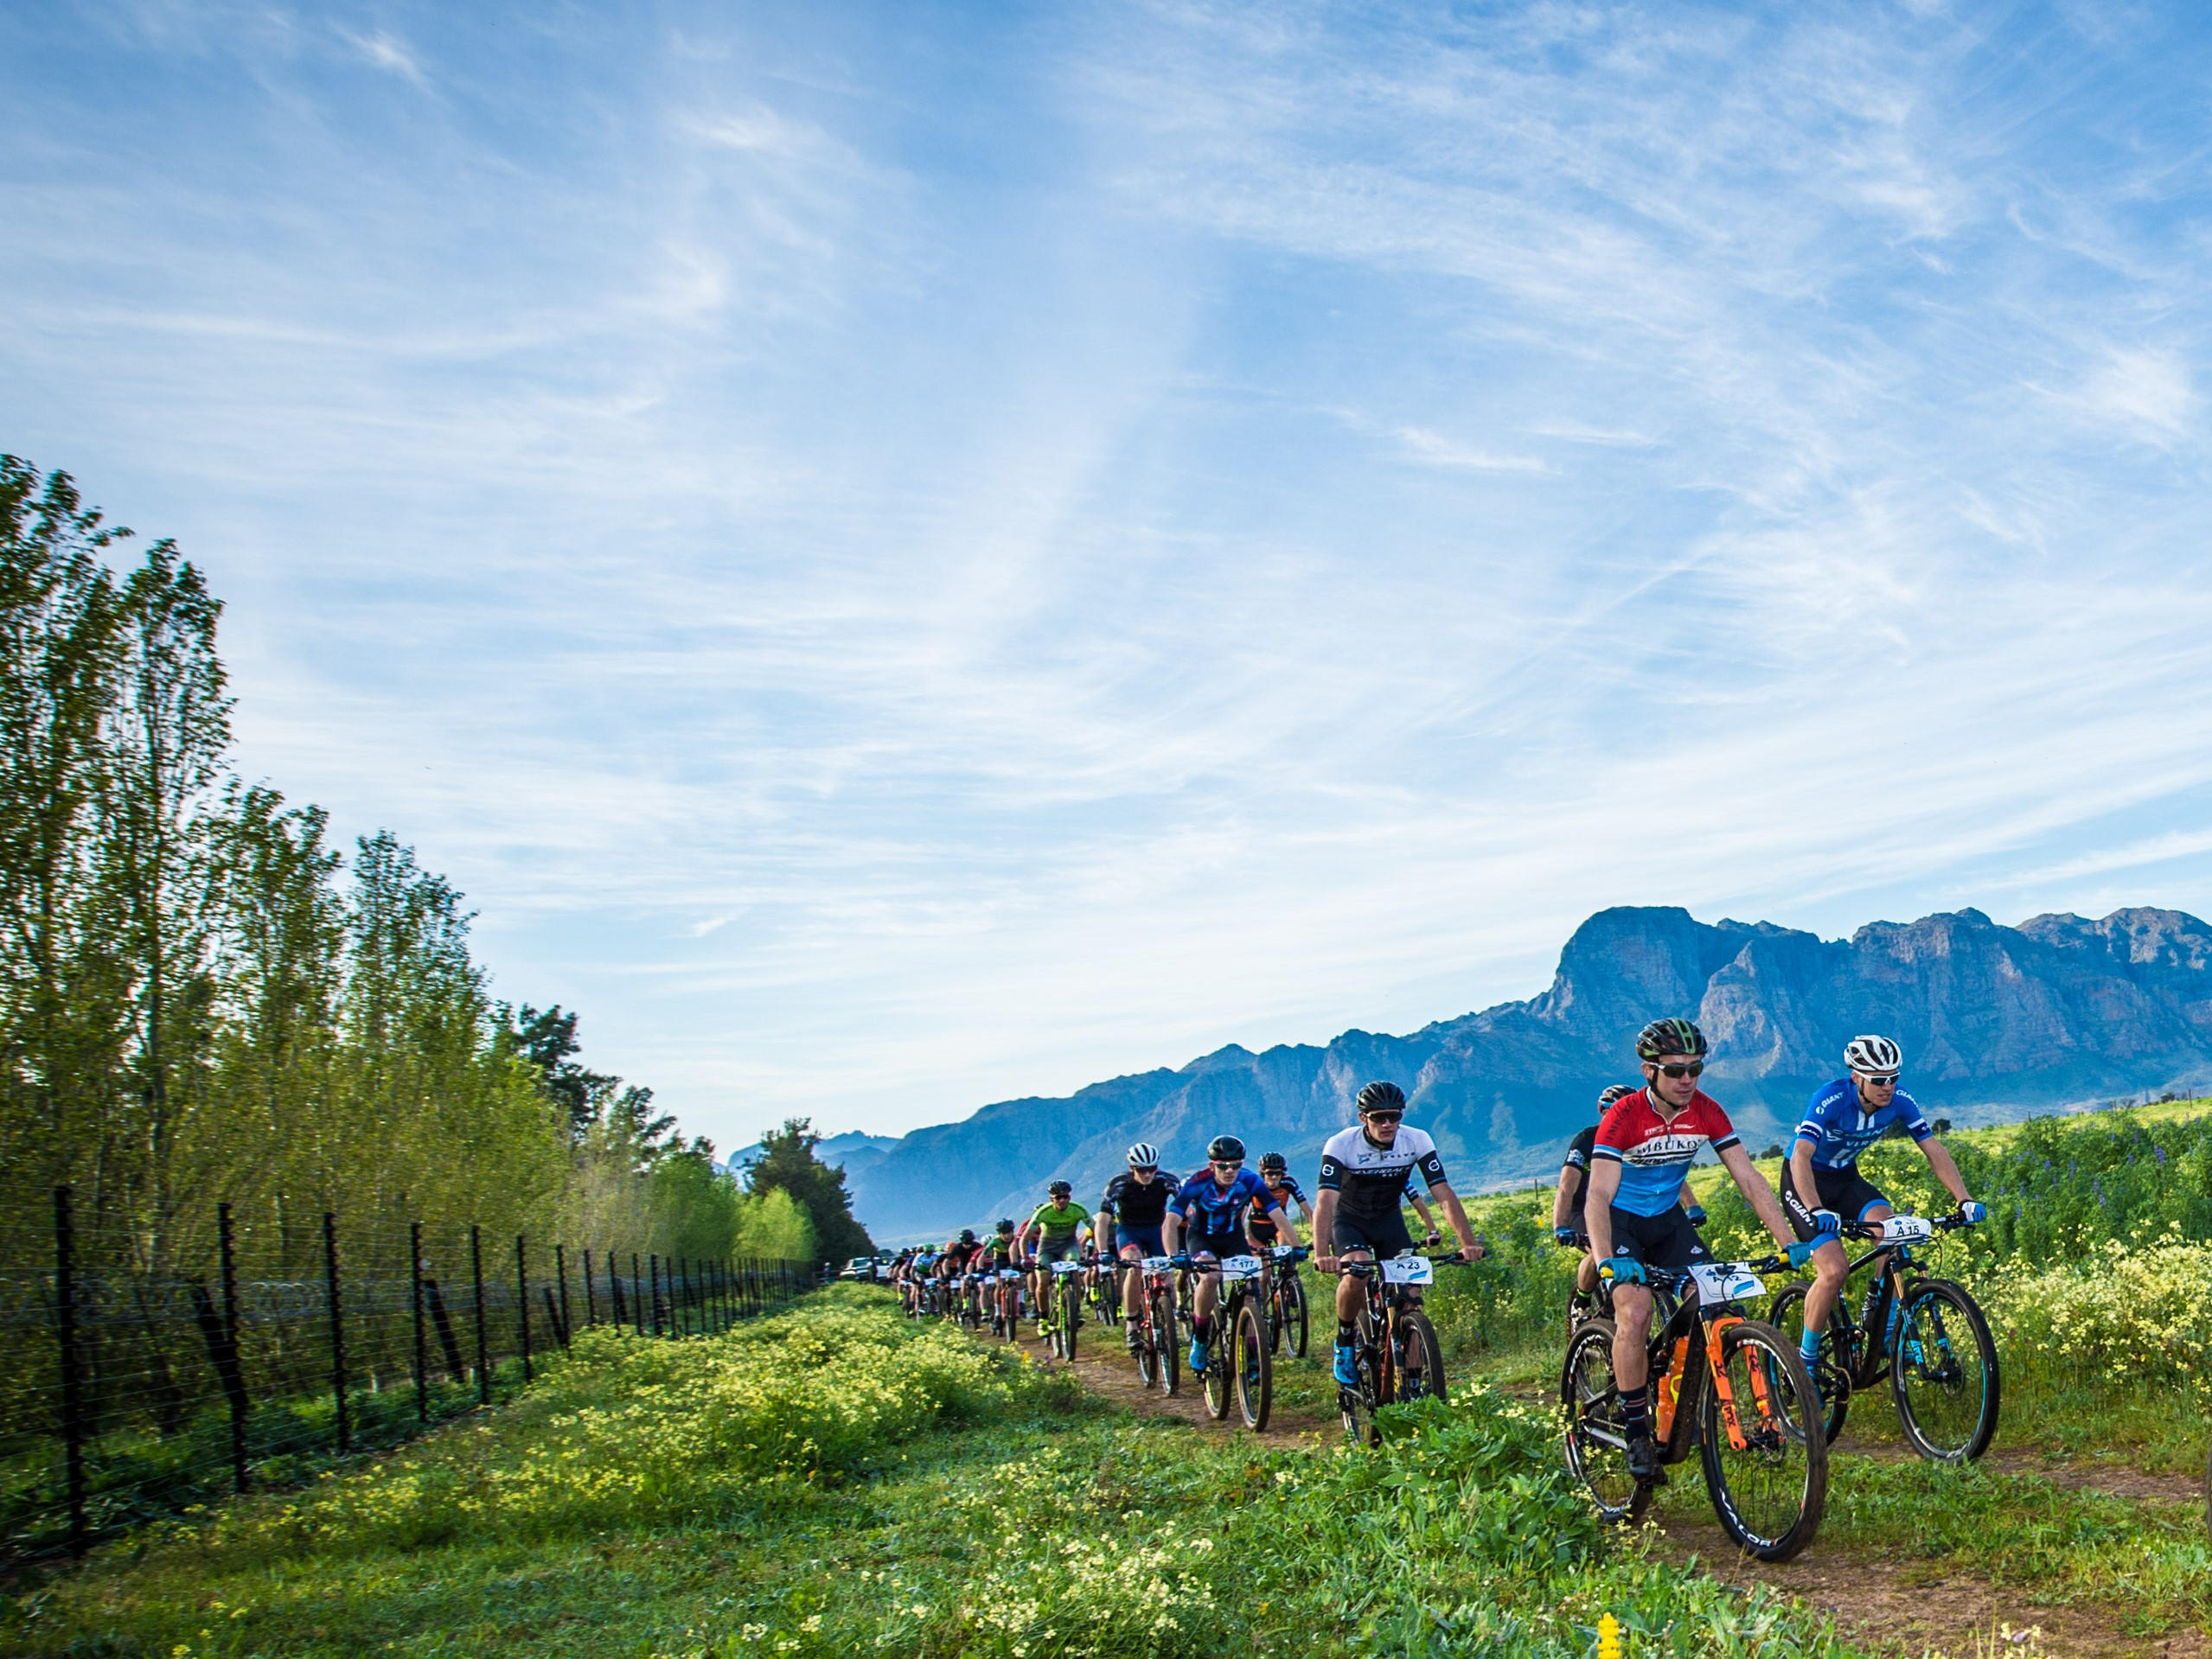 Mountain bikers in action at the 2018 Fedhealth MTB Challenge.  Photo Credit:  Tobias Ginsberg